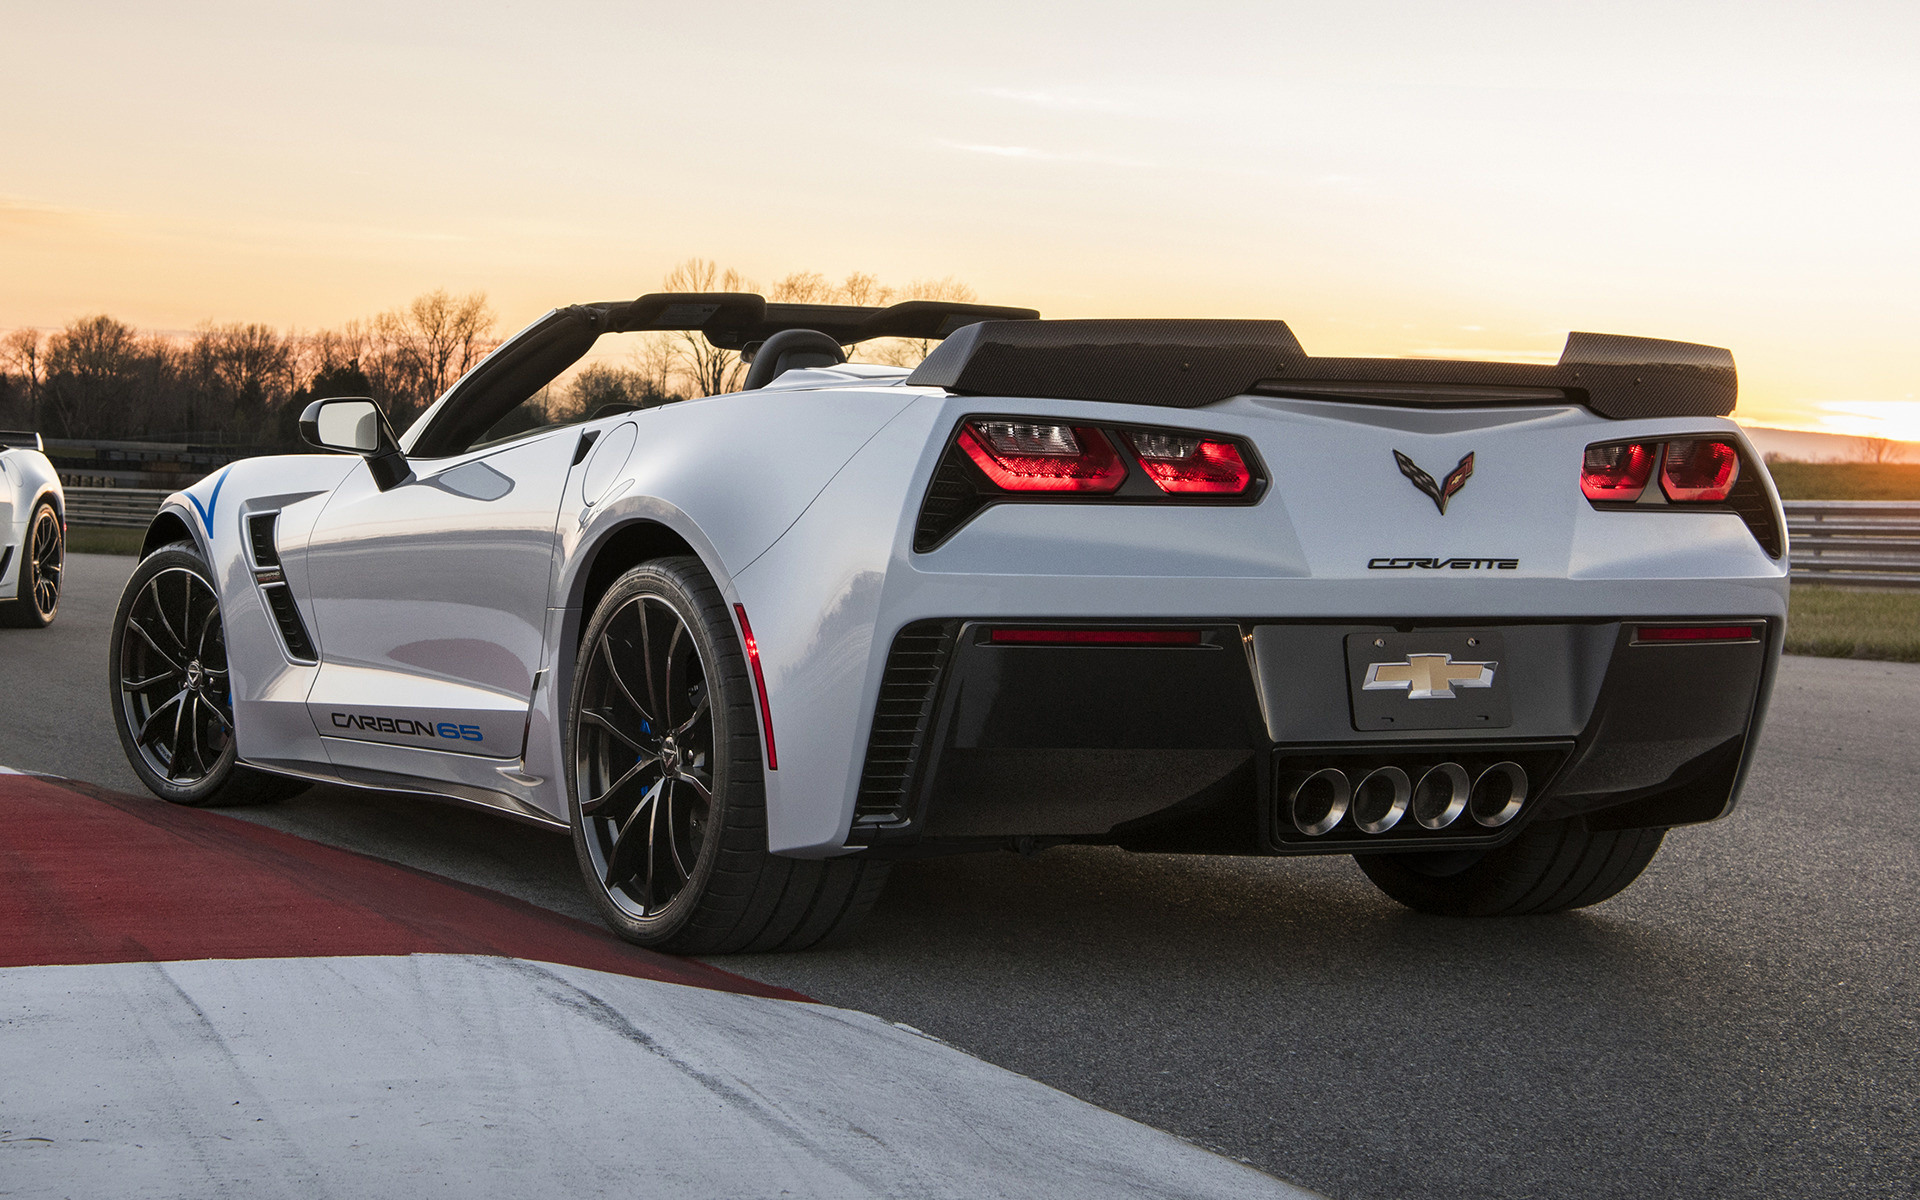 Corvette Grand Sport >> 2018 Chevrolet Corvette Grand Sport Convertible Carbon 65 Edition - Wallpapers and HD Images ...